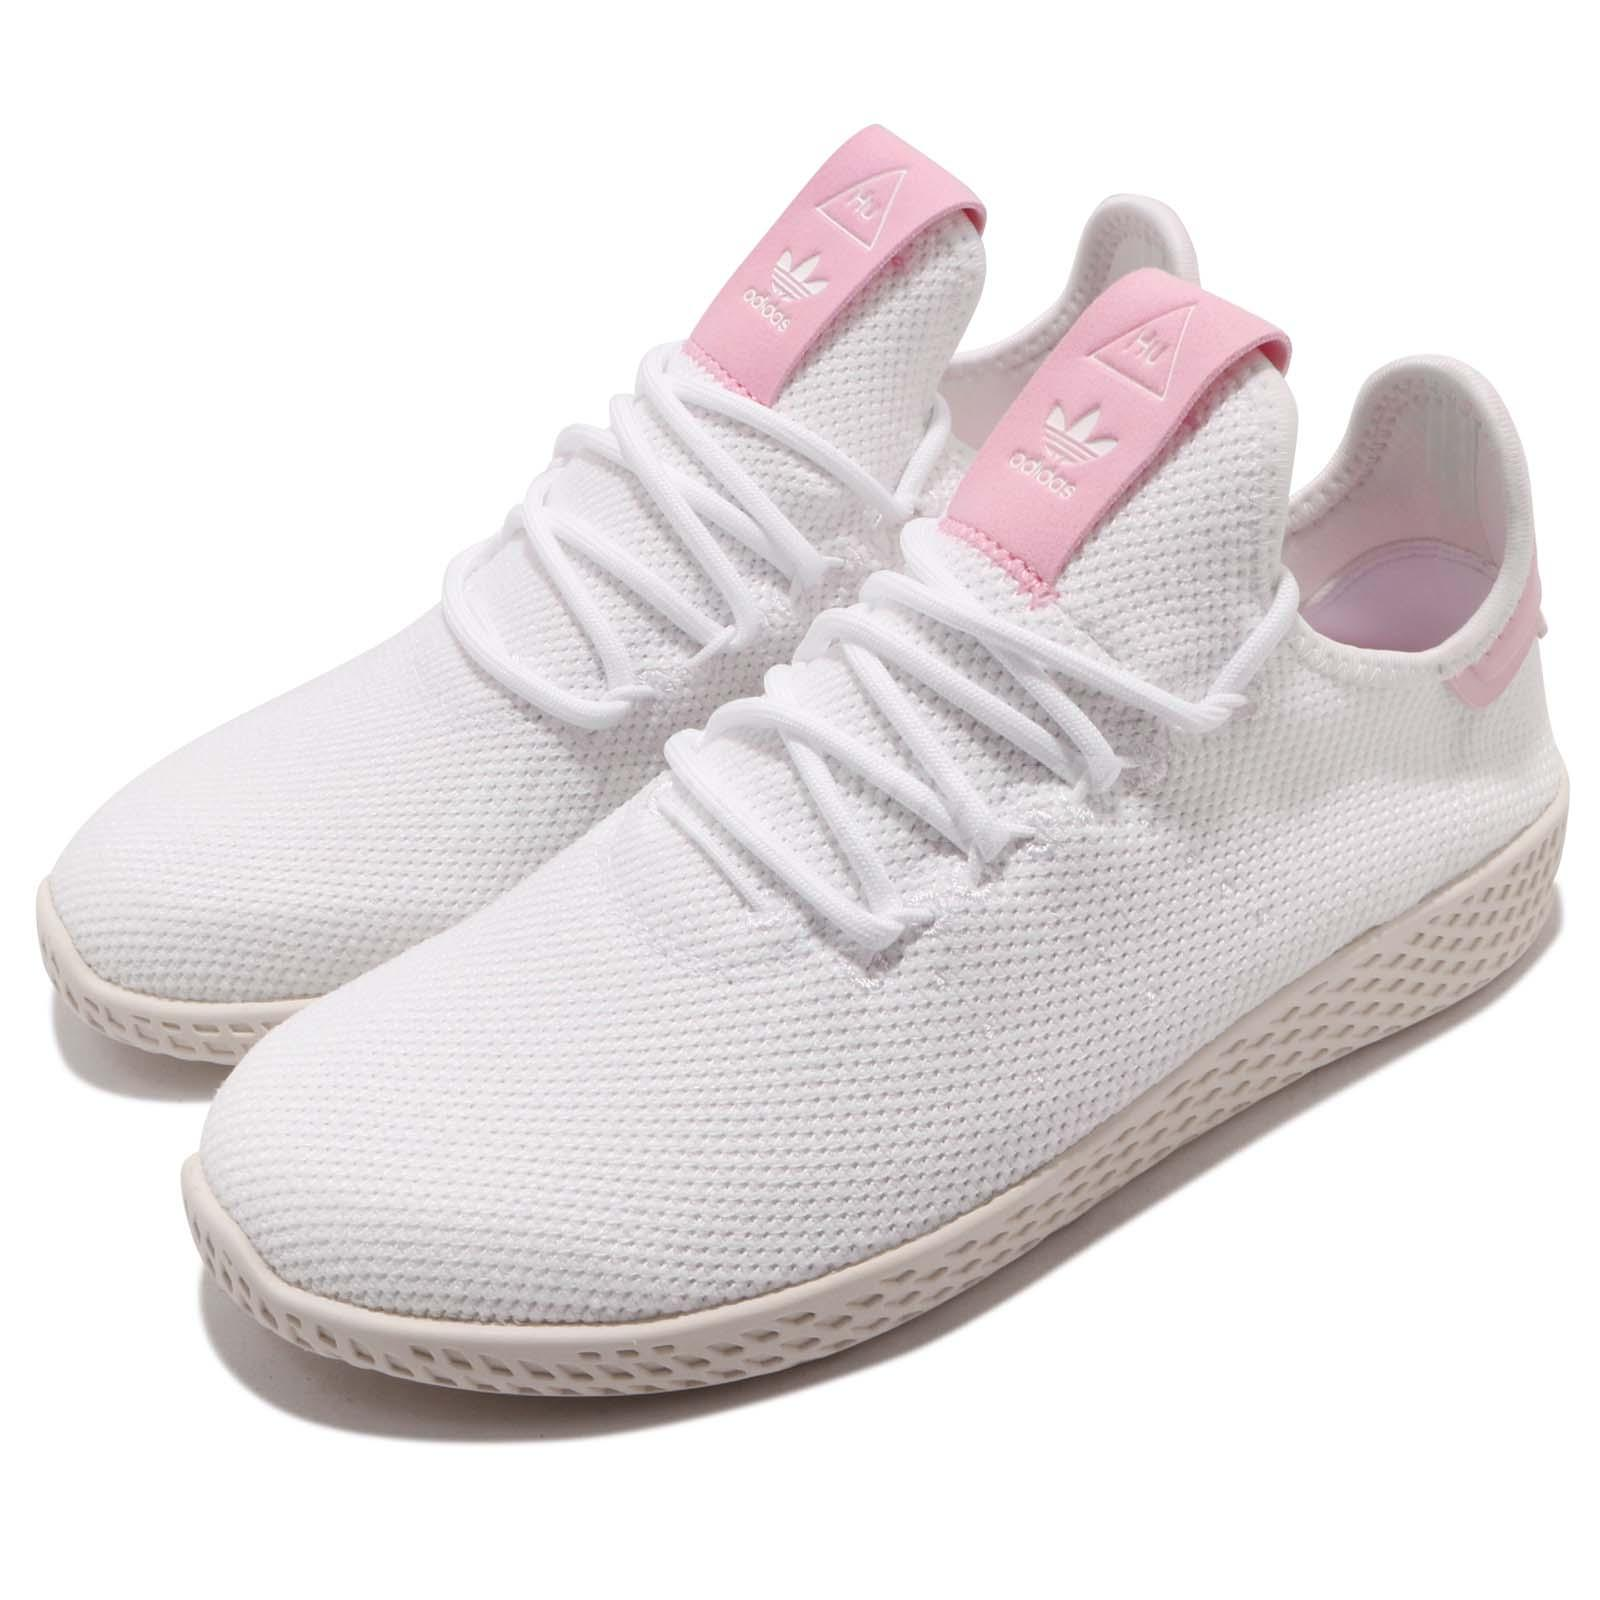 new product 9d2bc 52d35 Details about adidas Originals PW Tennis Hu W Footwear White Pink Women Casual  Shoes DB2558